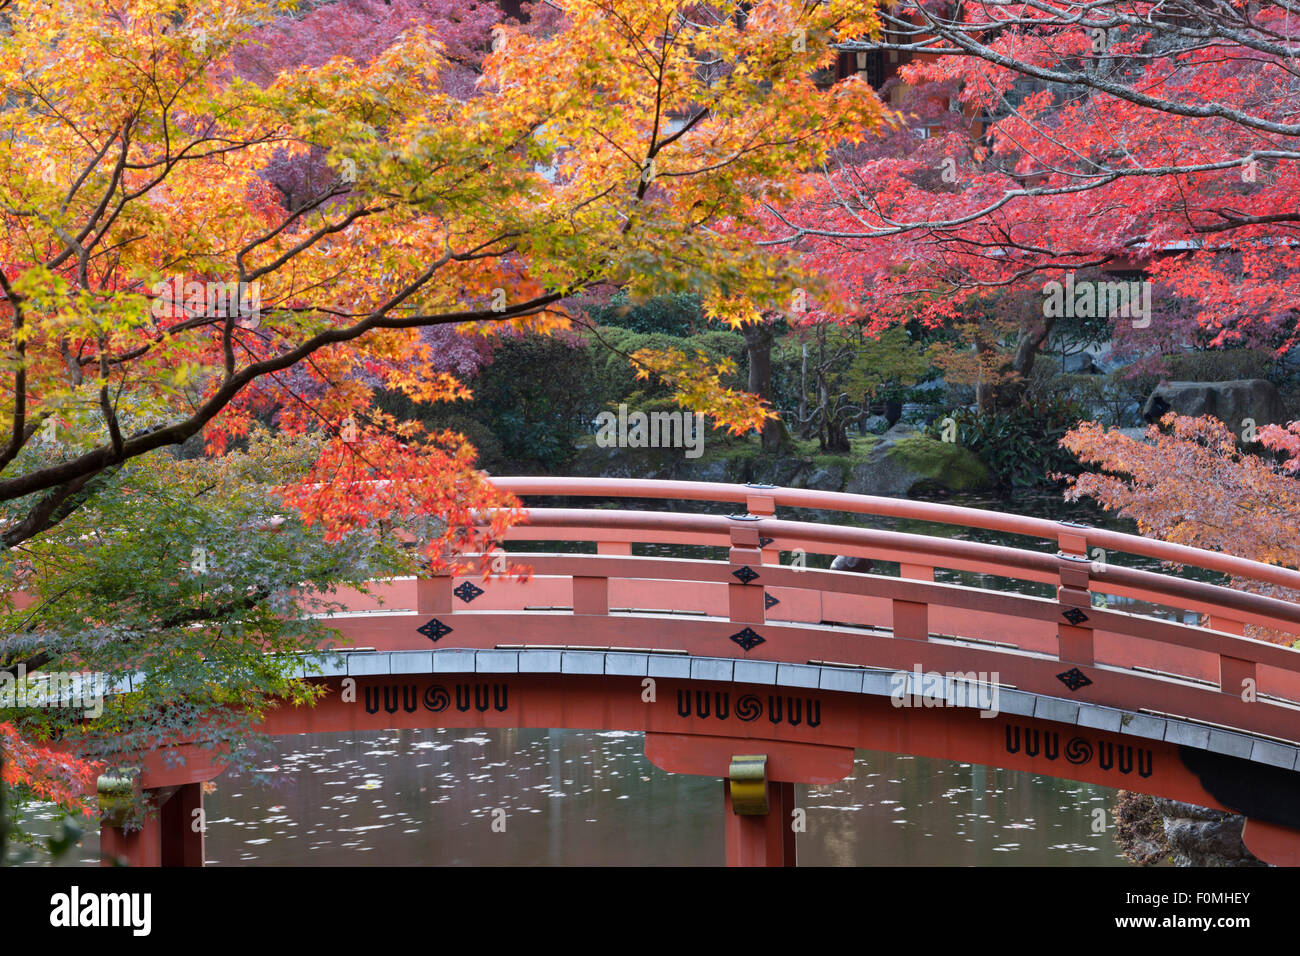 Falling Leaves In Water Live Wallpaper Japanese Bridge And Temple Garden In Autumn Daigoji